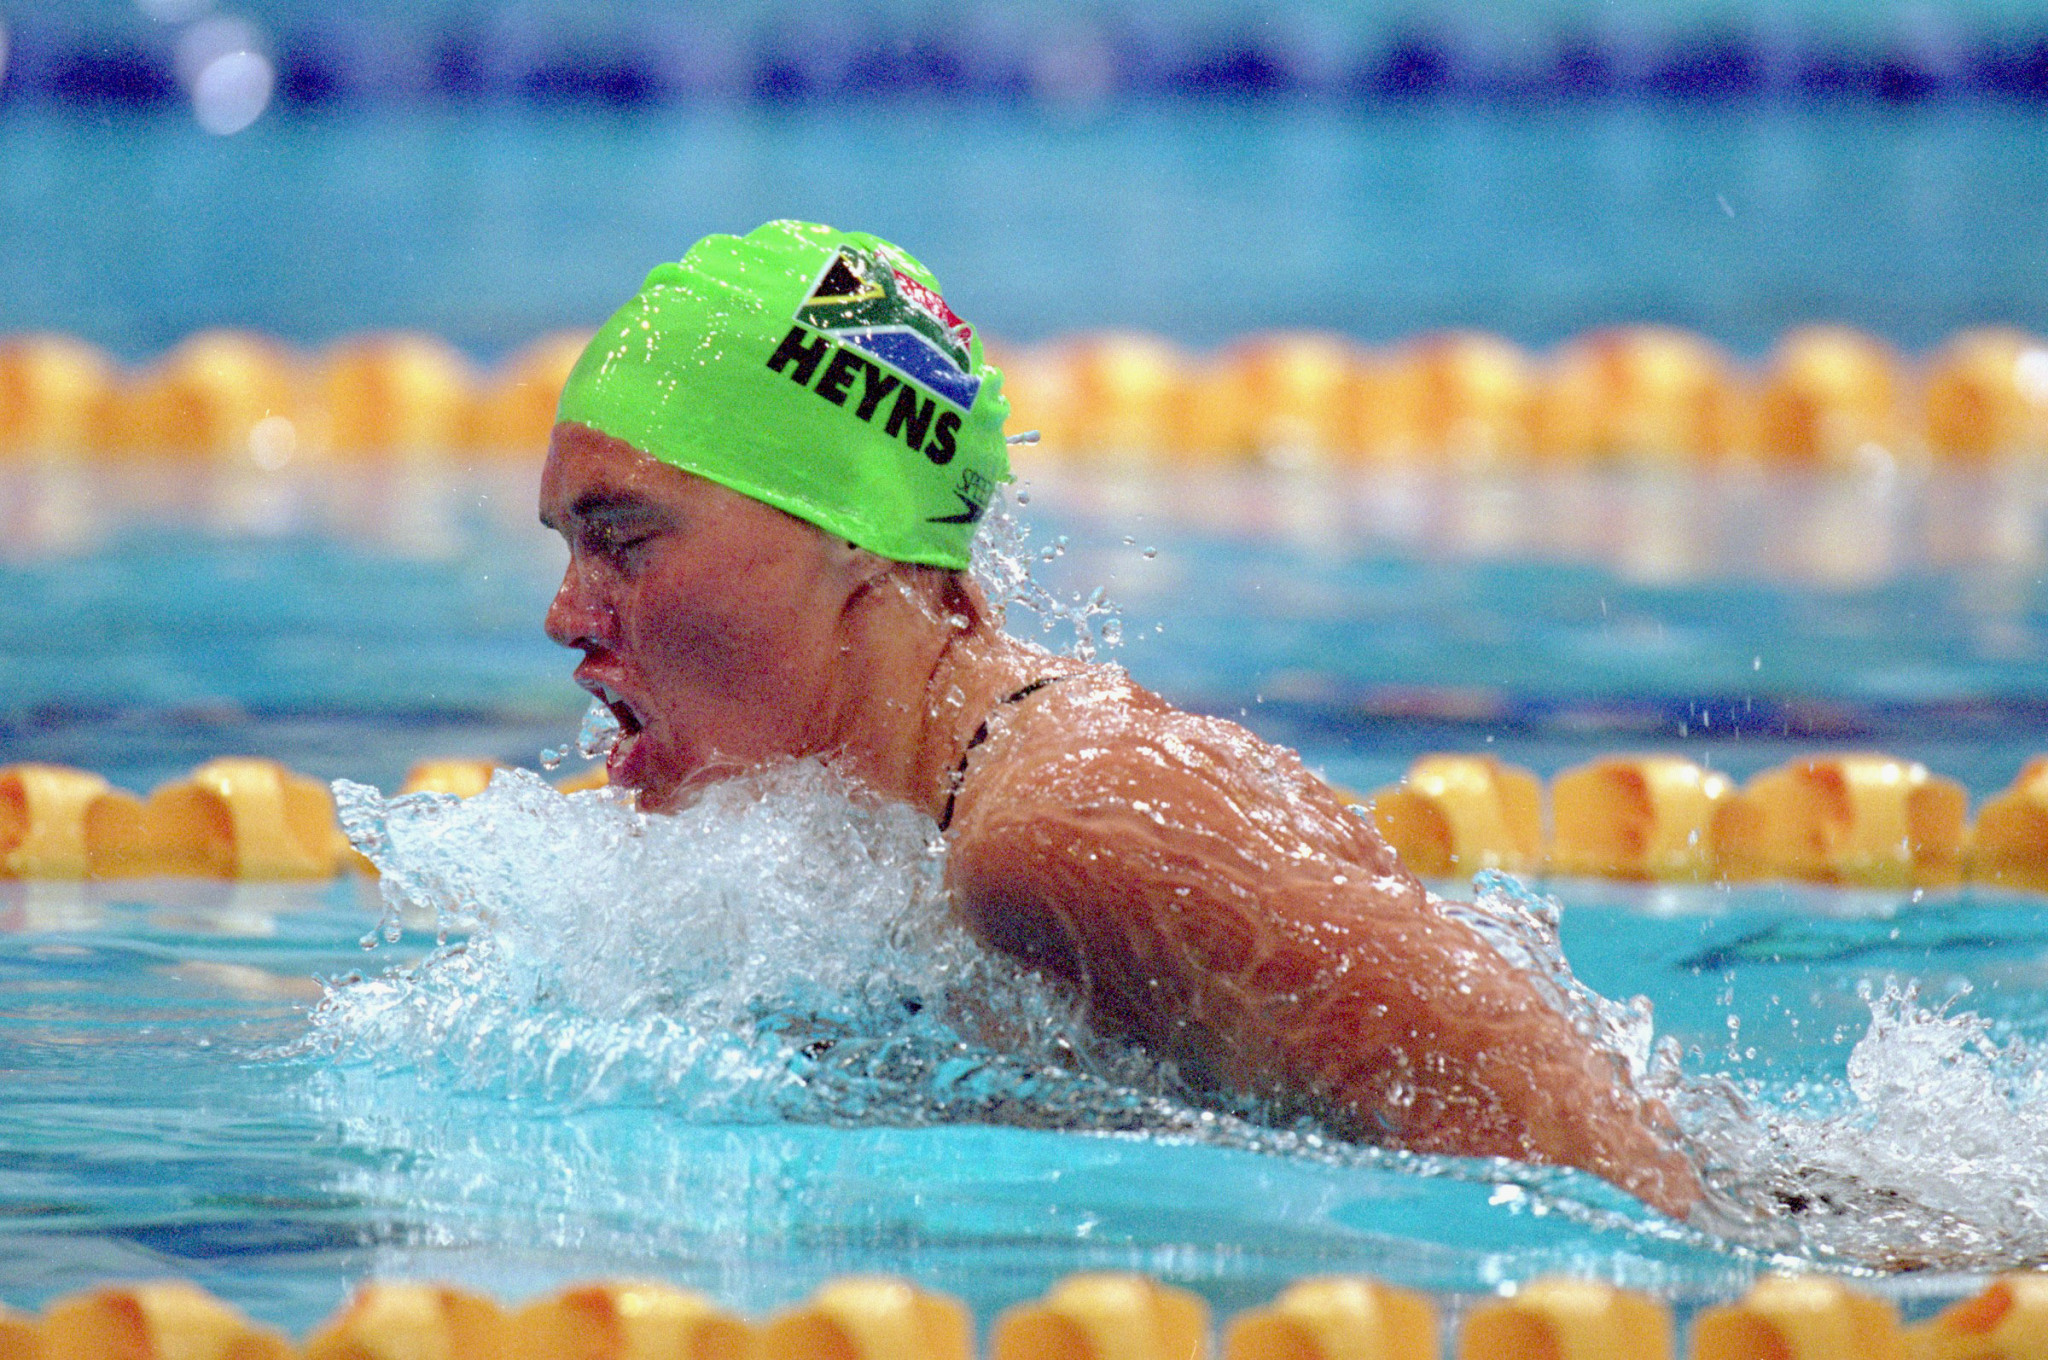 South Africa's double Olympic swimming gold medallist Penny Heyns played a key role in the CRC recommending clean Russian athletes be able to compete, it was revealed ©Getty Images